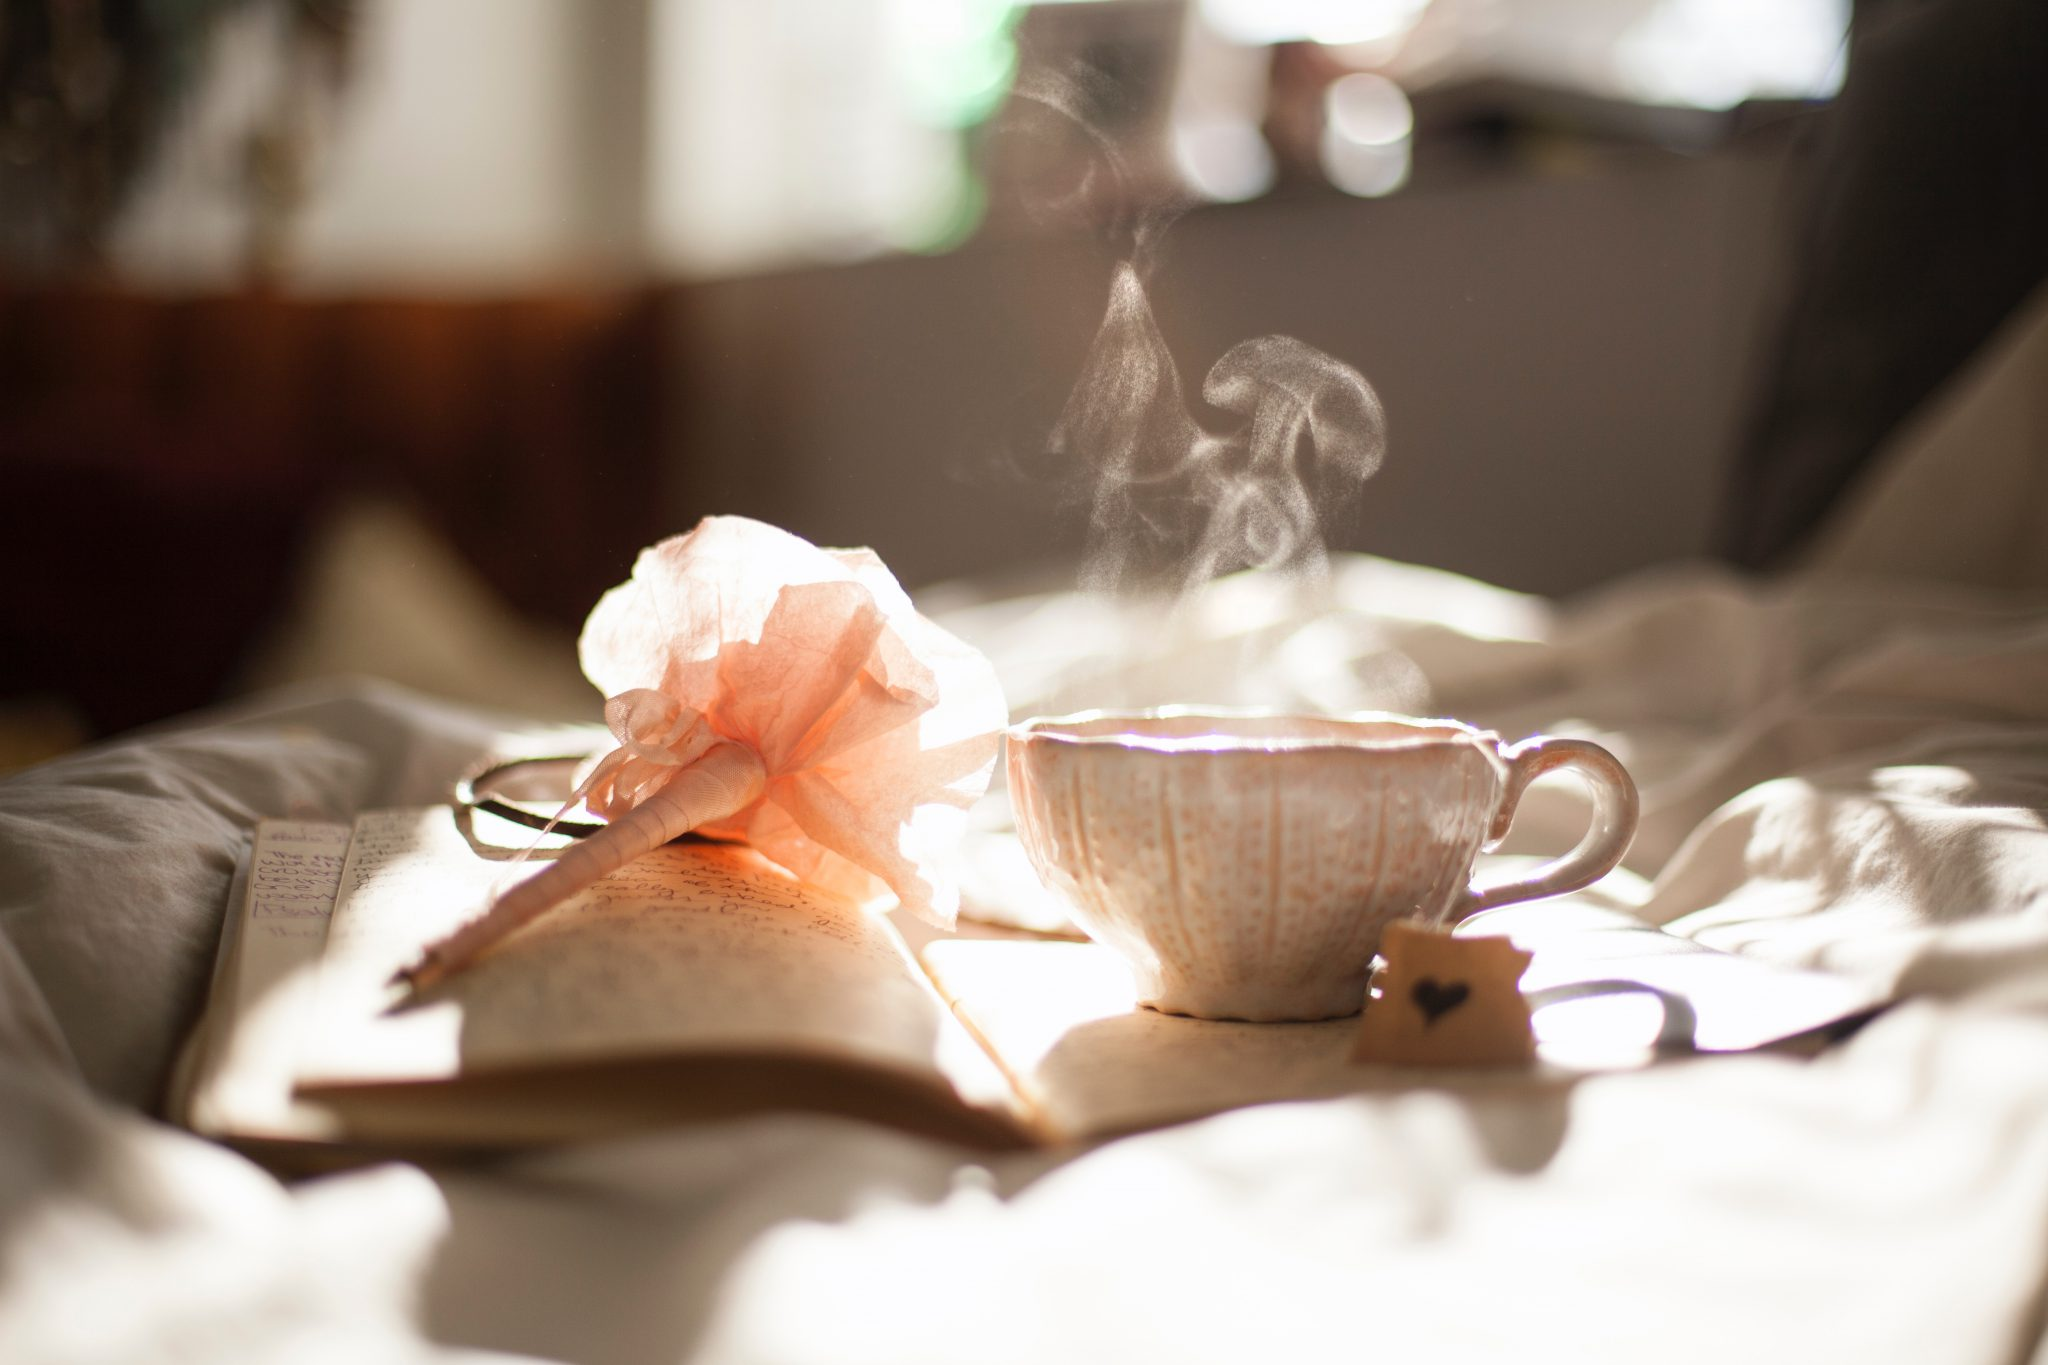 journal and a cup of tea